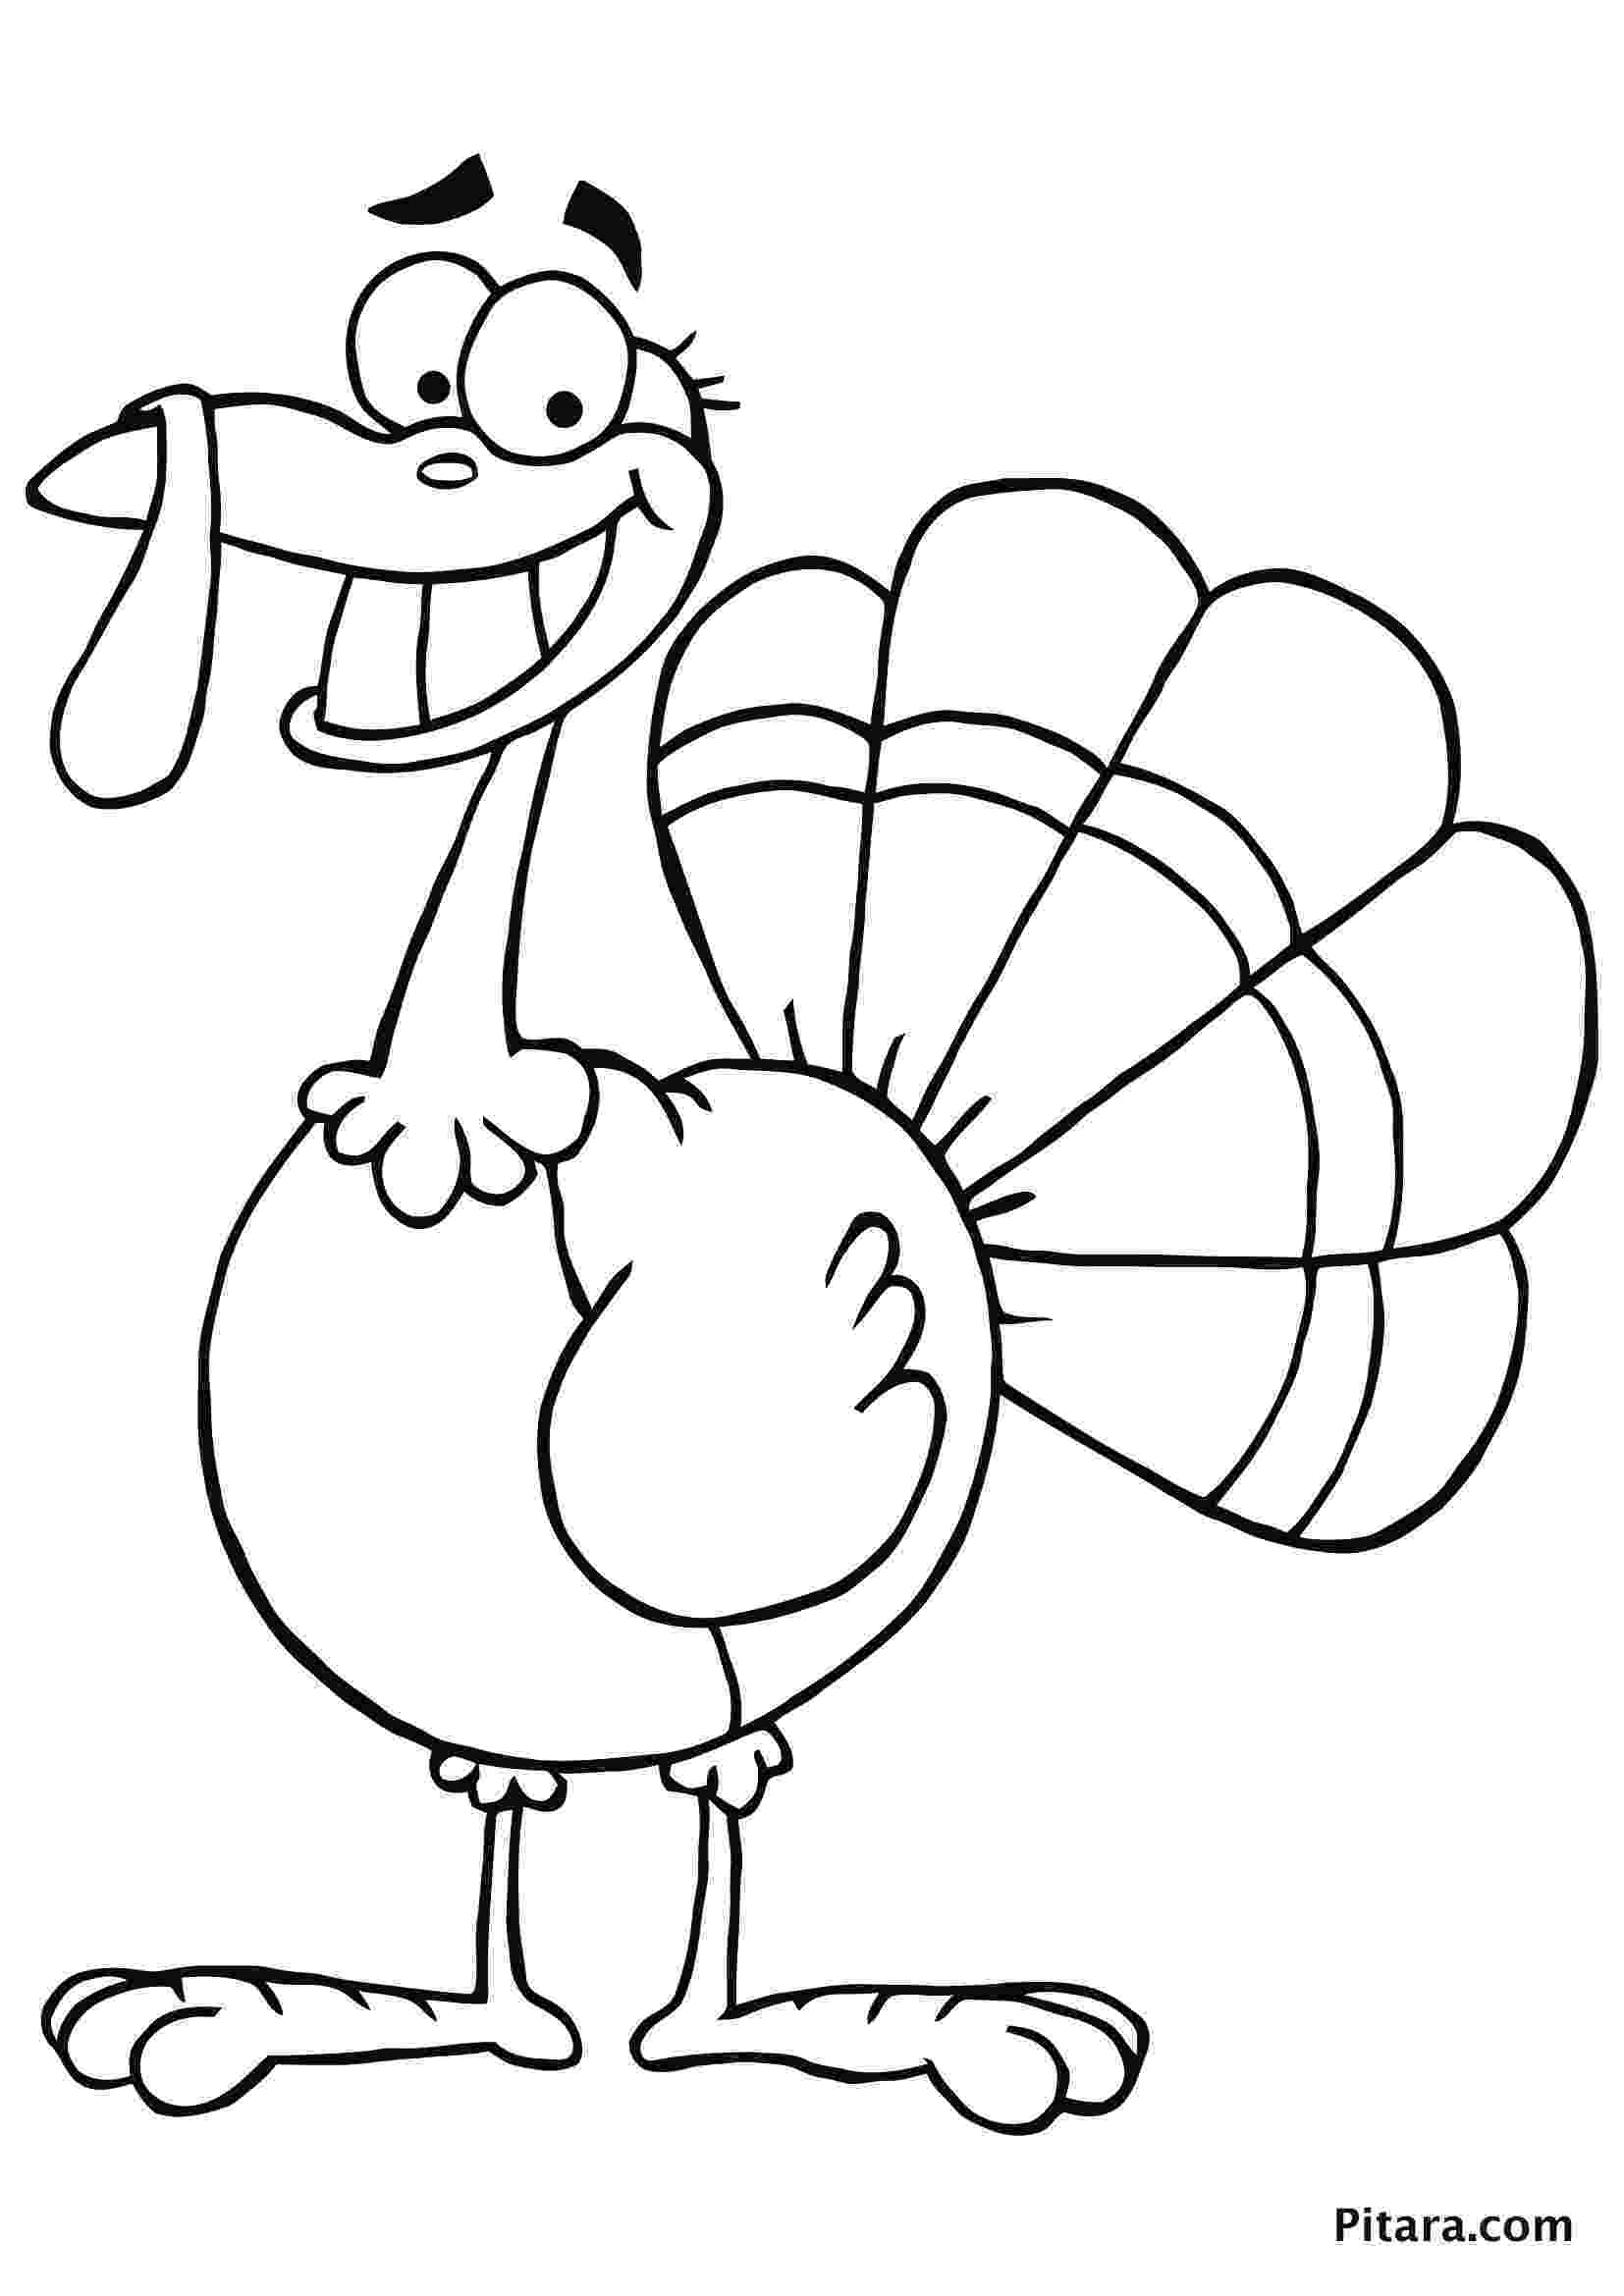 free turkey coloring pages coloring pages minnesota miranda turkey free coloring pages